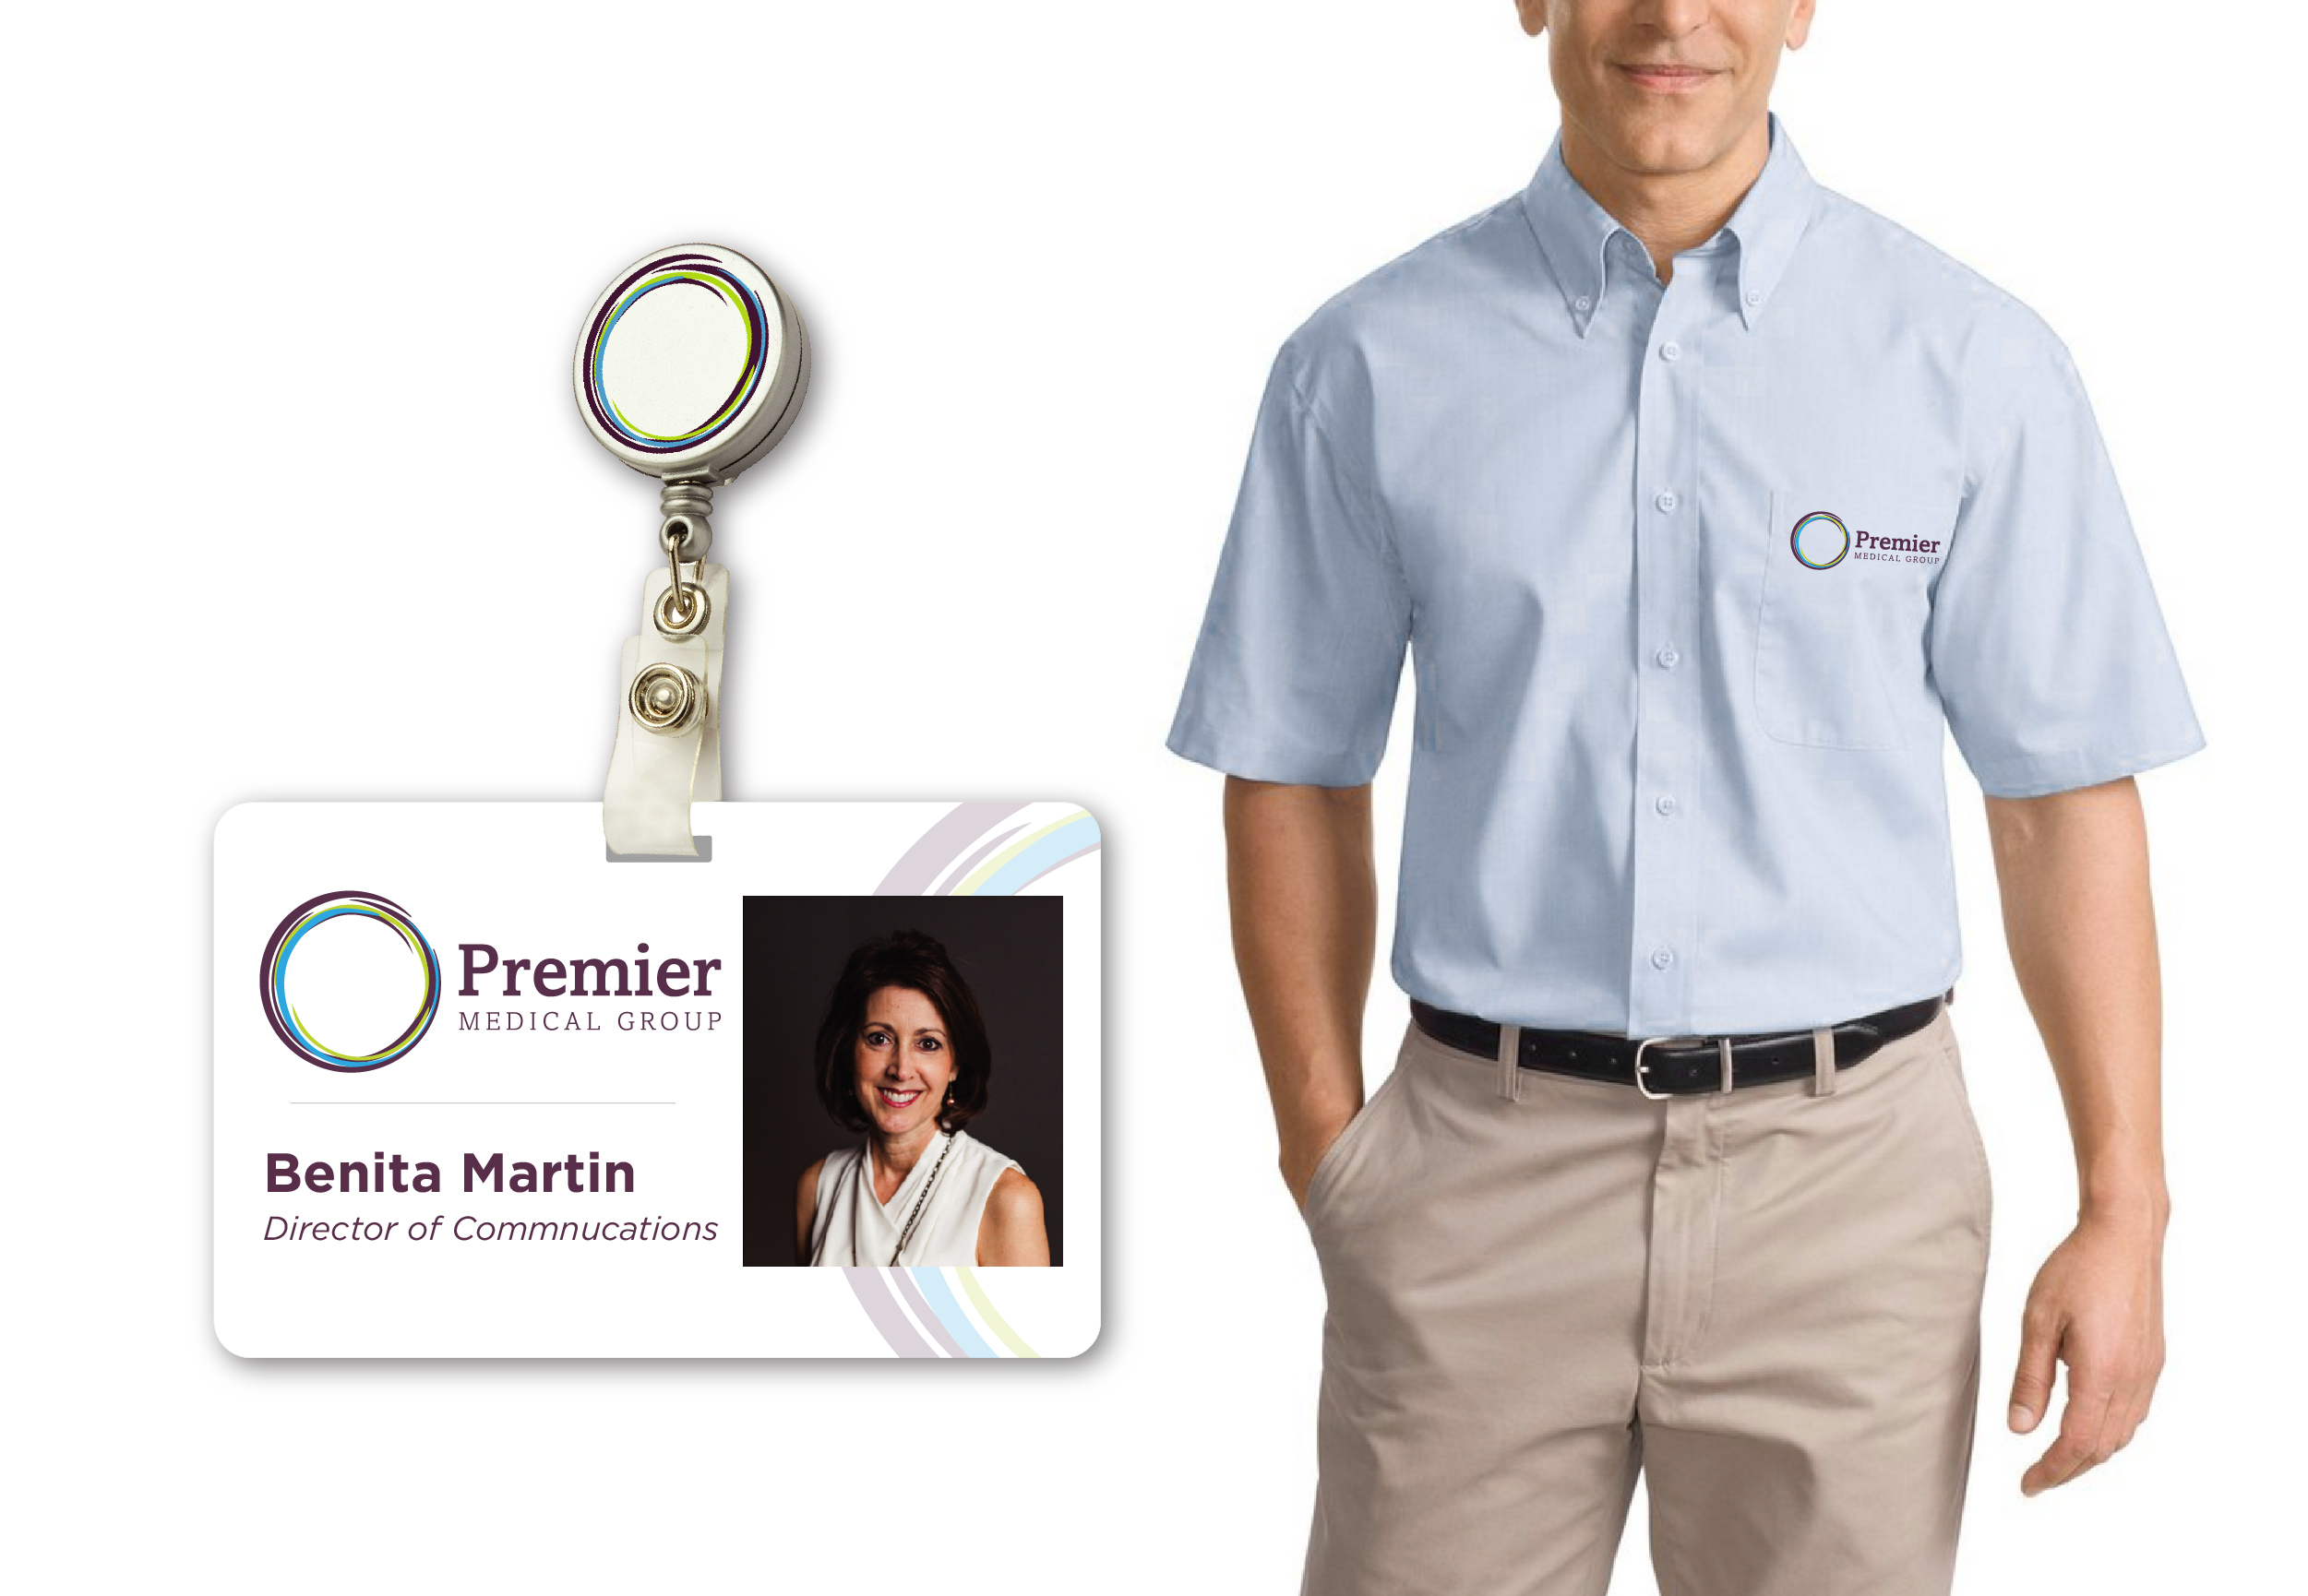 Premier Medical Group Employee ID